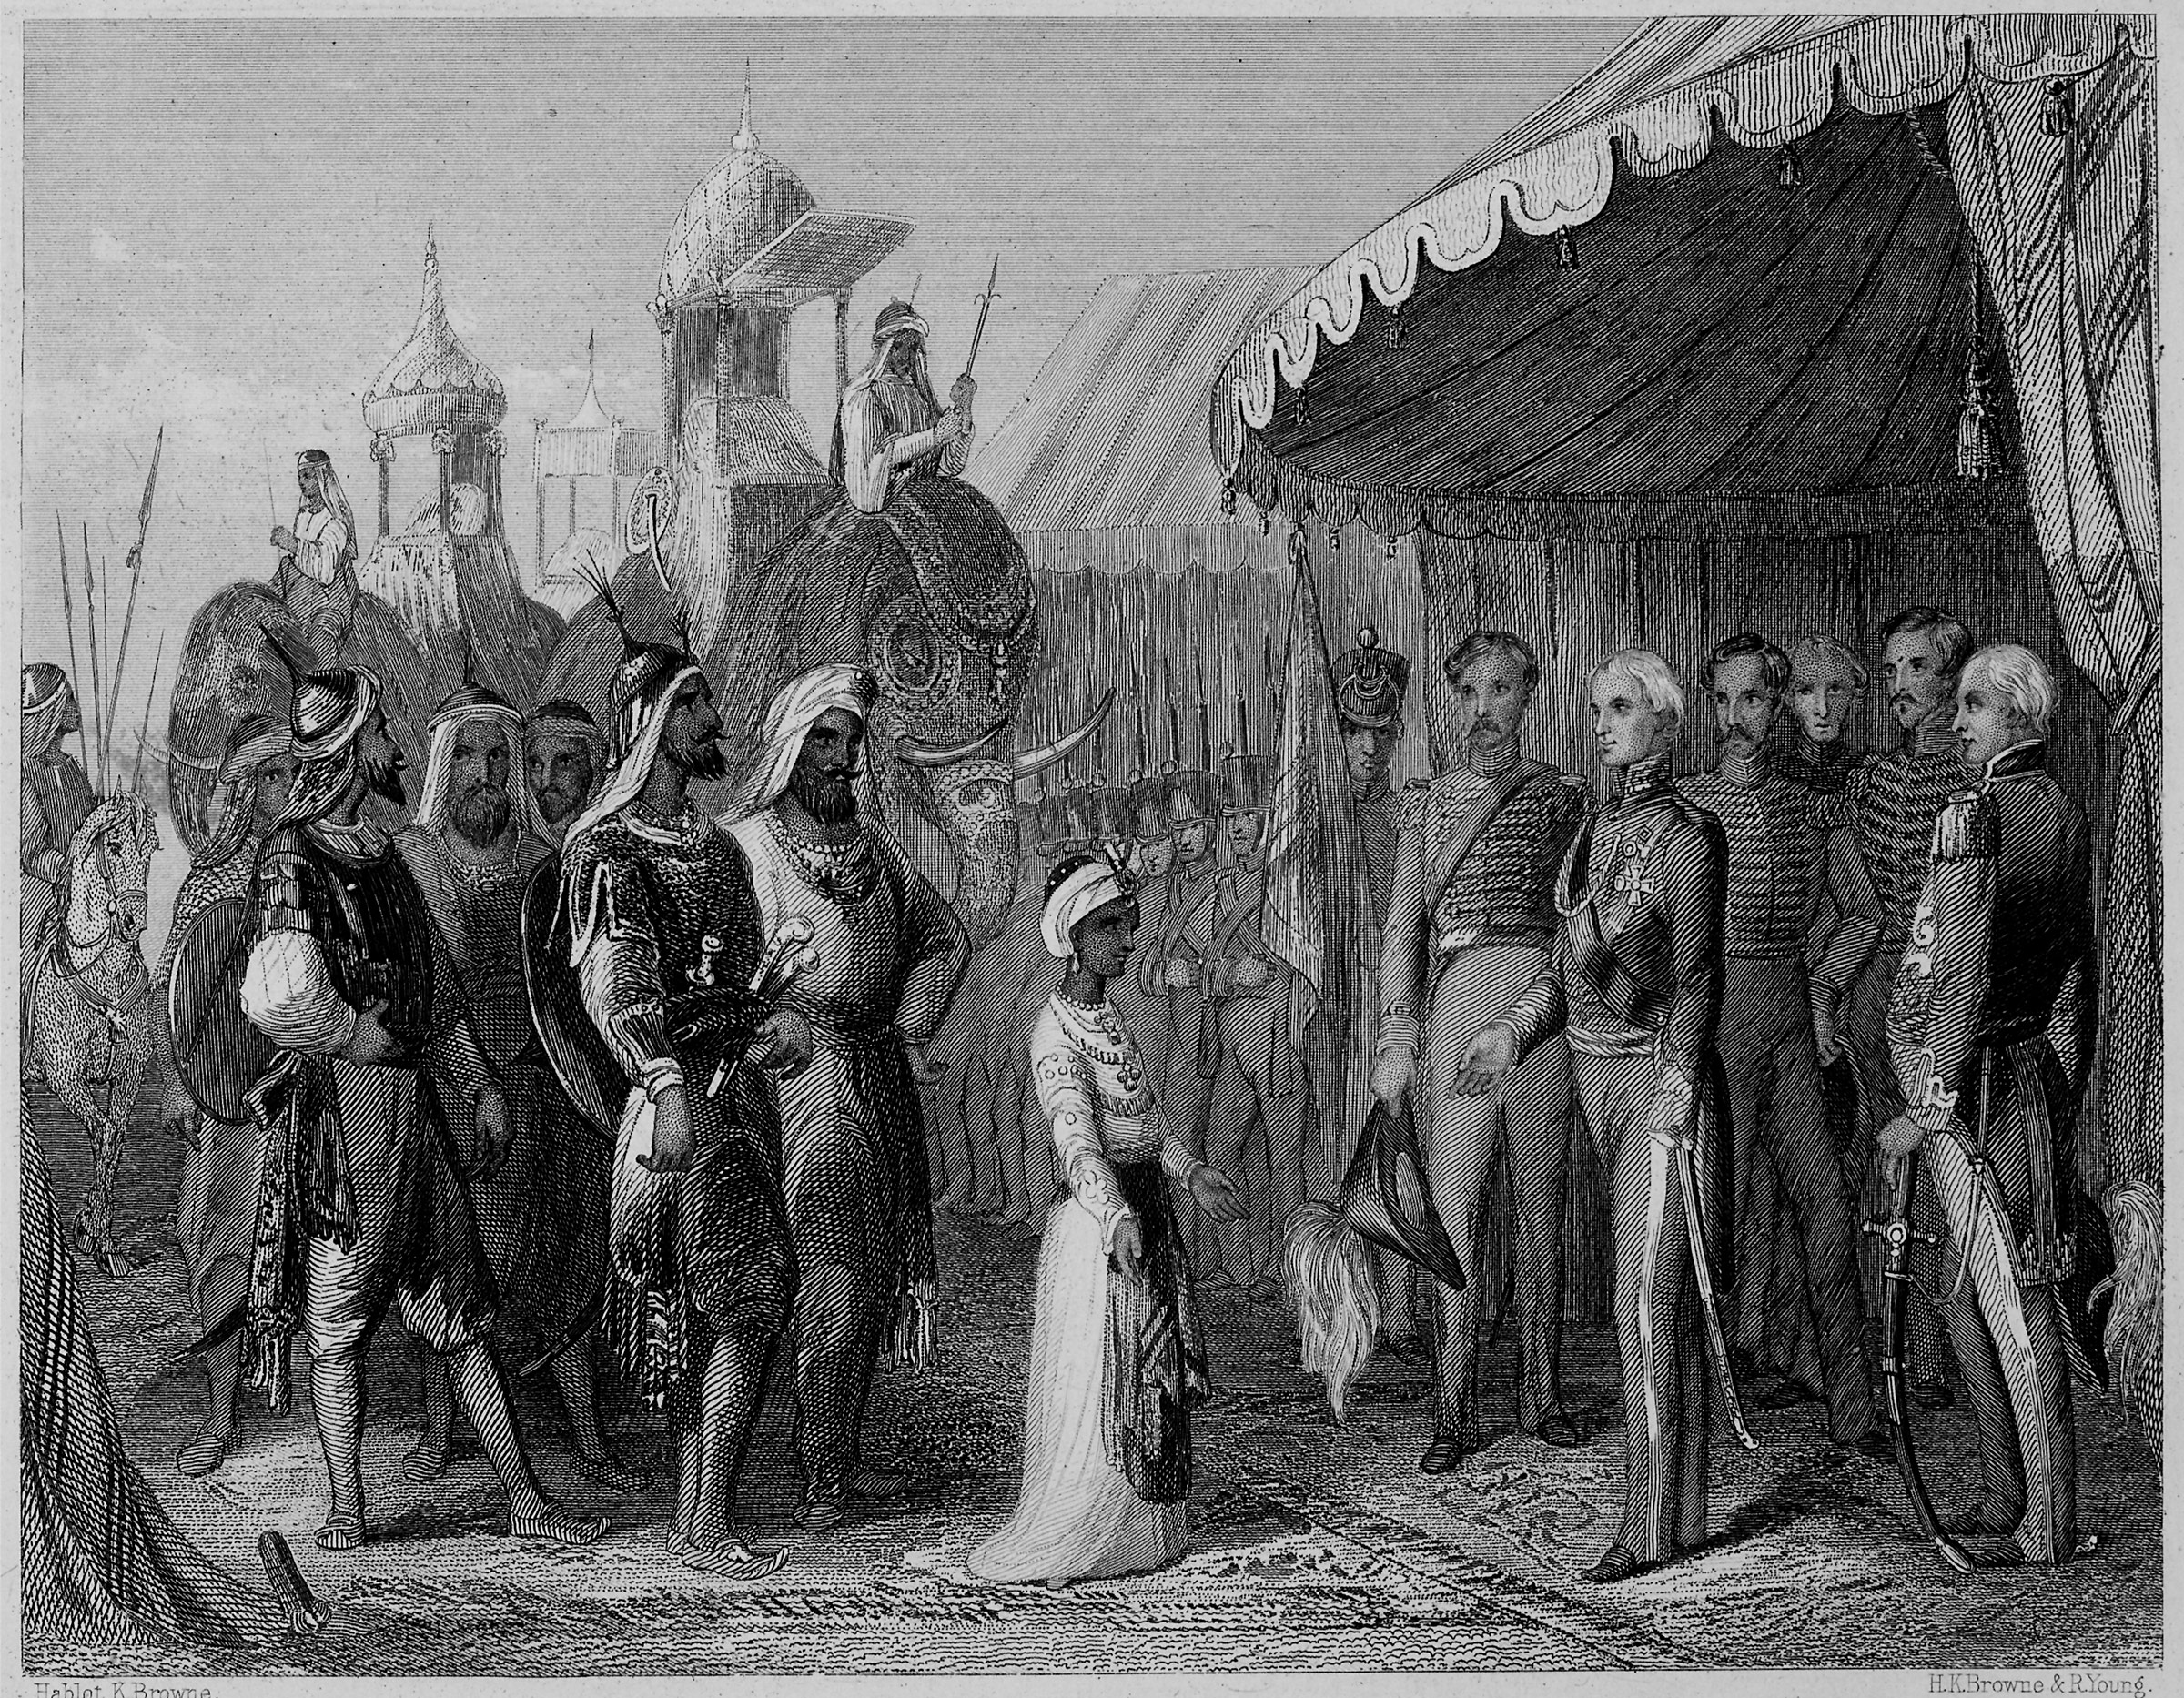 The submission of the Maharajah Duleep Singh to Sir Henry Hardinge as the battle of Sobraon ends the 1st Sikh War in India in 1846